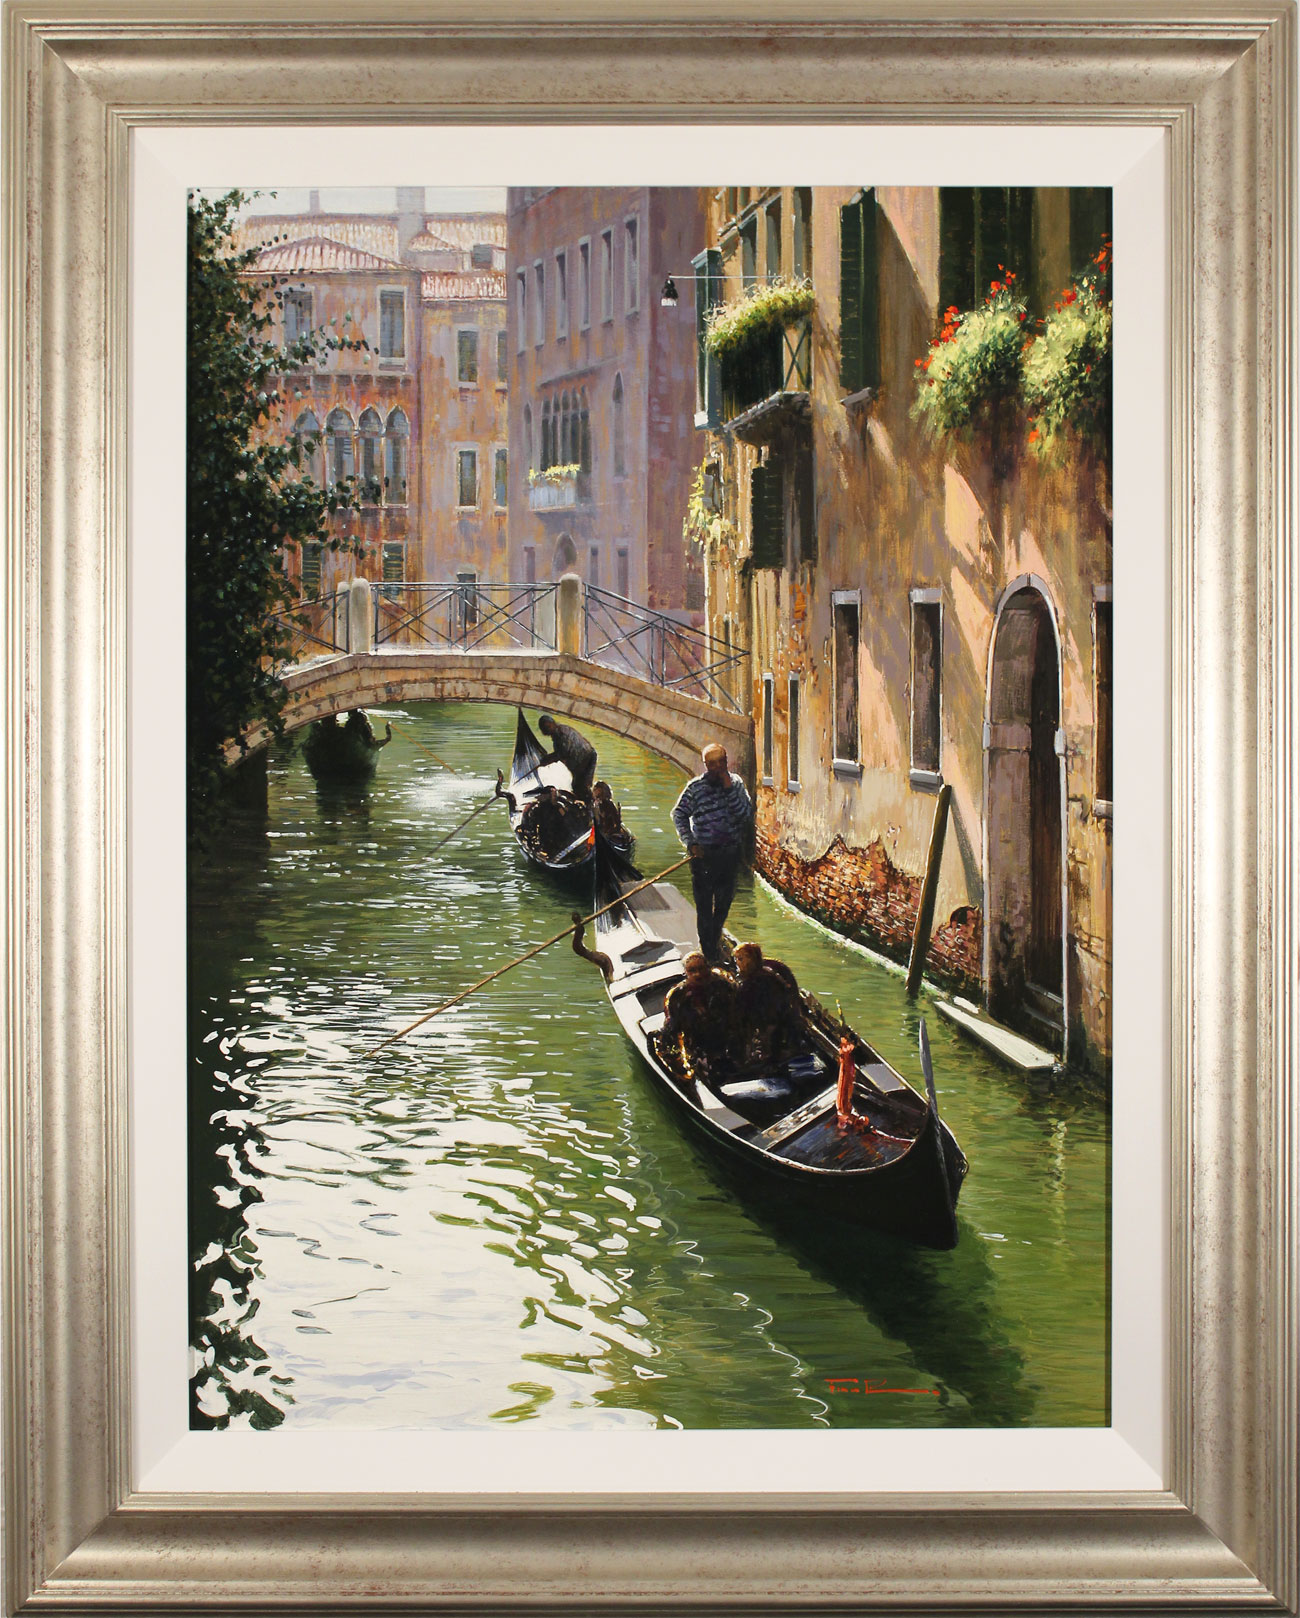 Raffaele Fiore, Original oil painting on canvas, Venetian Gondolas , click to enlarge